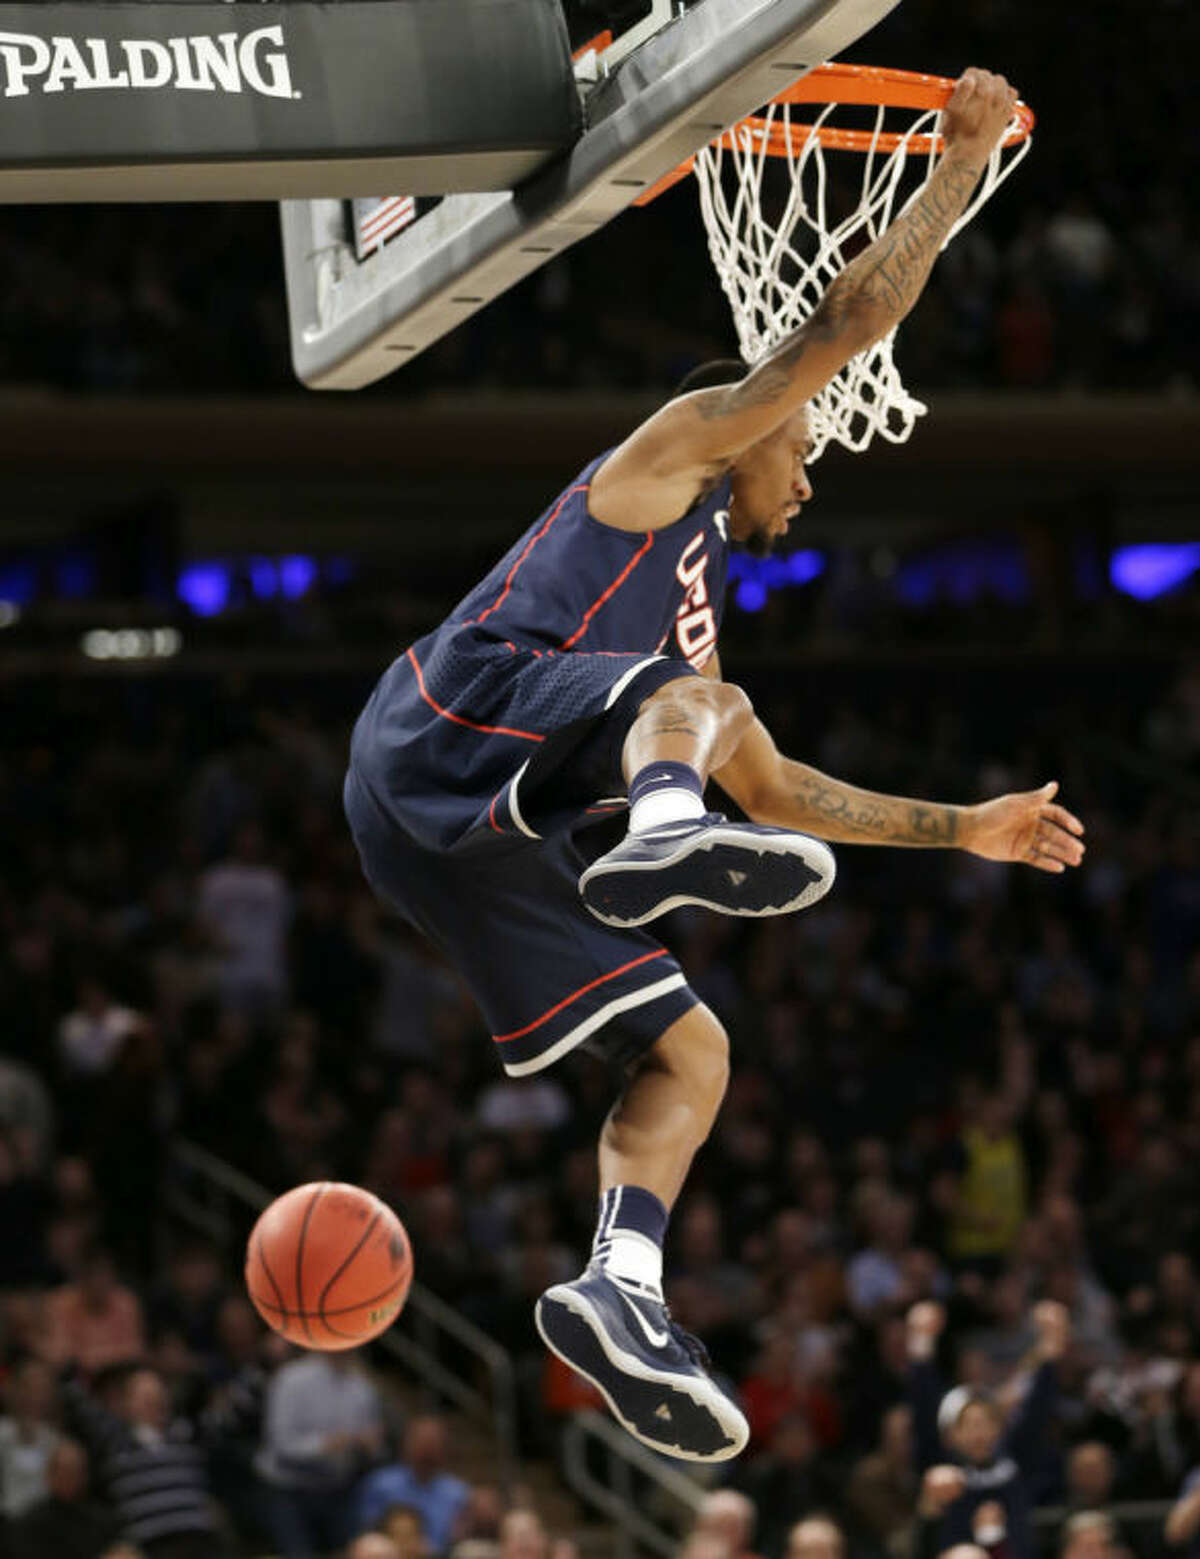 Connecticut's Ryan Boatright dunks the ball in the first half of a regional final against Michigan State at the NCAA college basketball tournament on Sunday, March 30, 2014, in New York. (AP Photo/Seth Wenig)